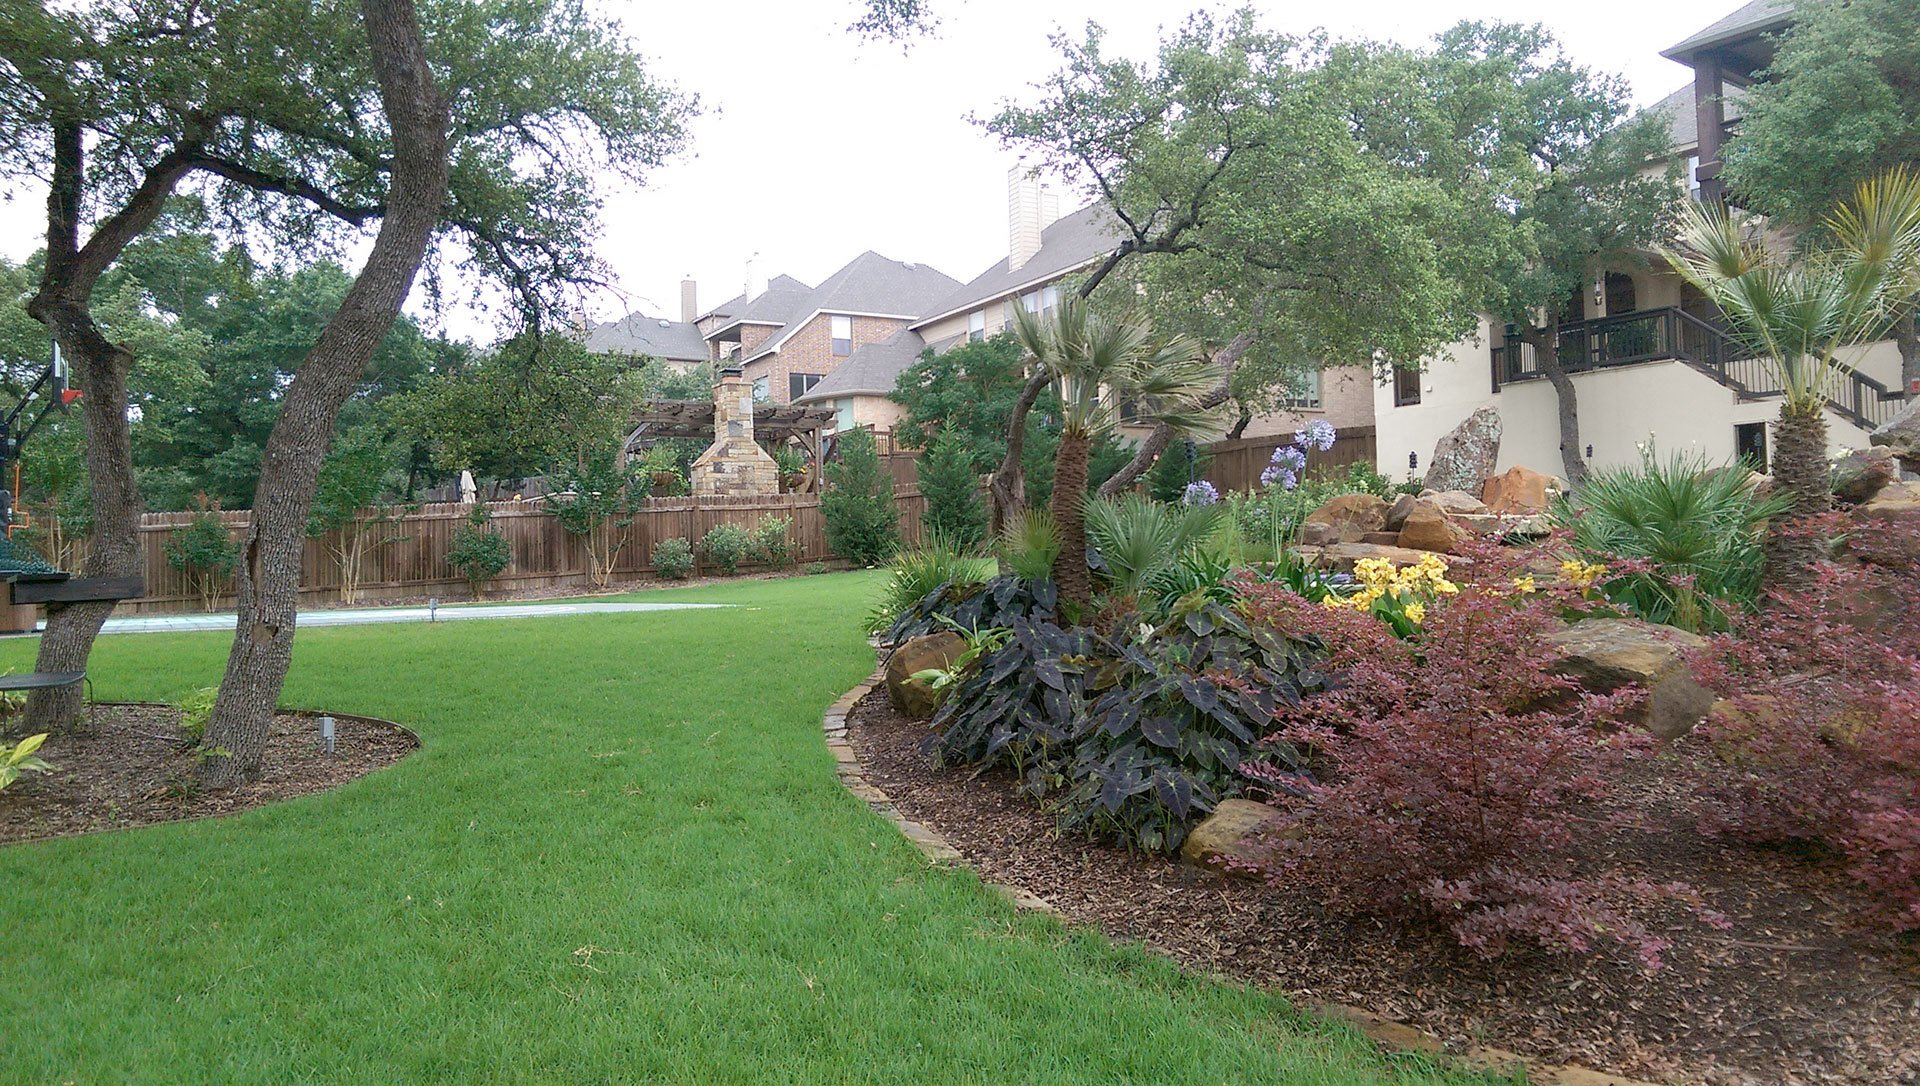 Commercial Lawn Care Services San Antonio, TX